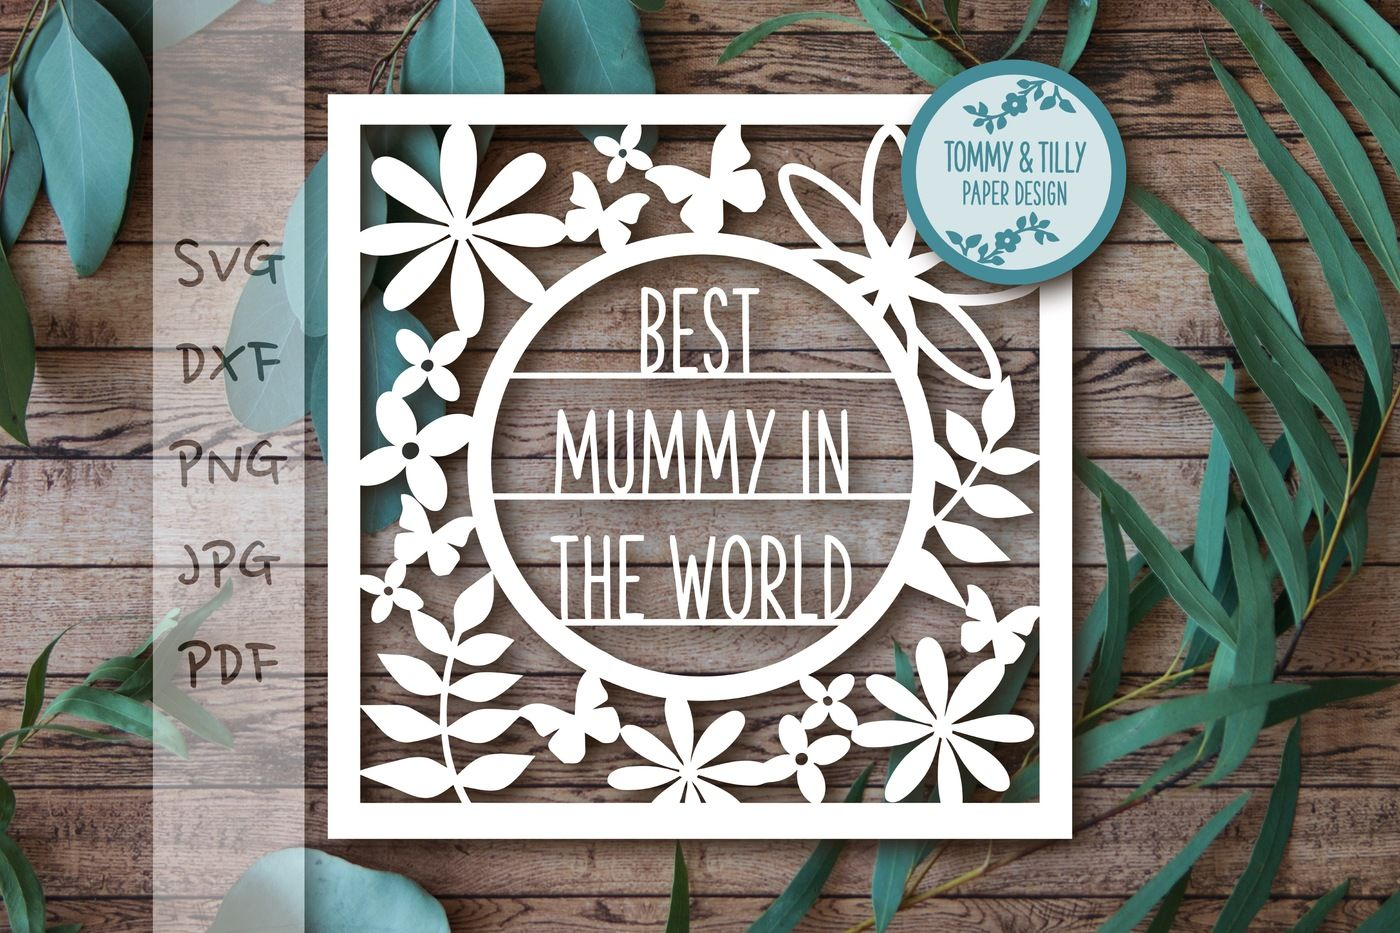 Best Mummy Frame Svg Dxf Pdf Png Jpg By Tommy And Tilly Design